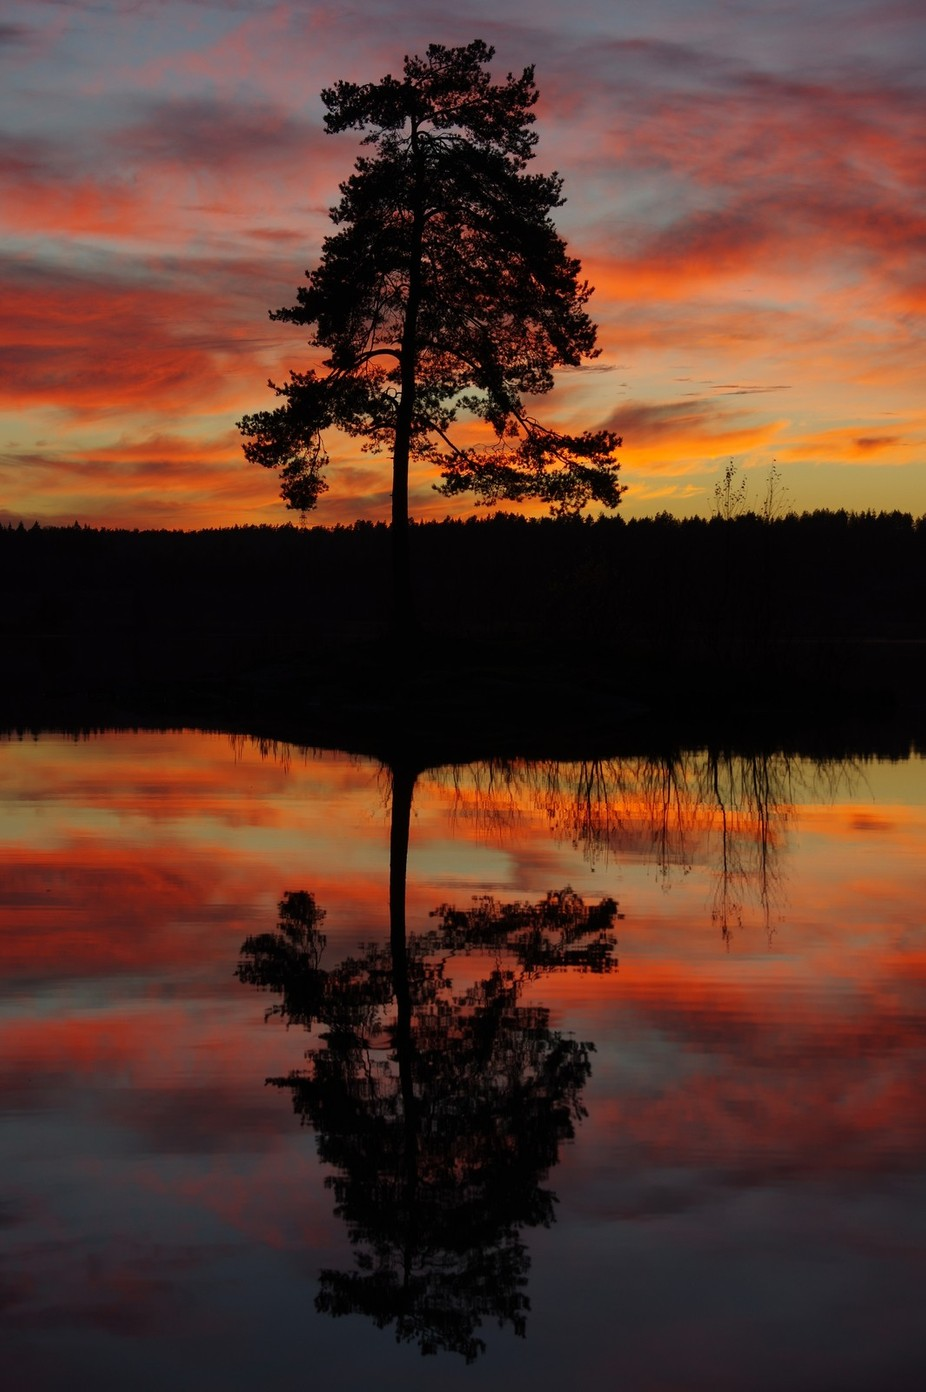 Sunset by the lake by Ivar-Ola - Tree Silhouettes Photo Contest